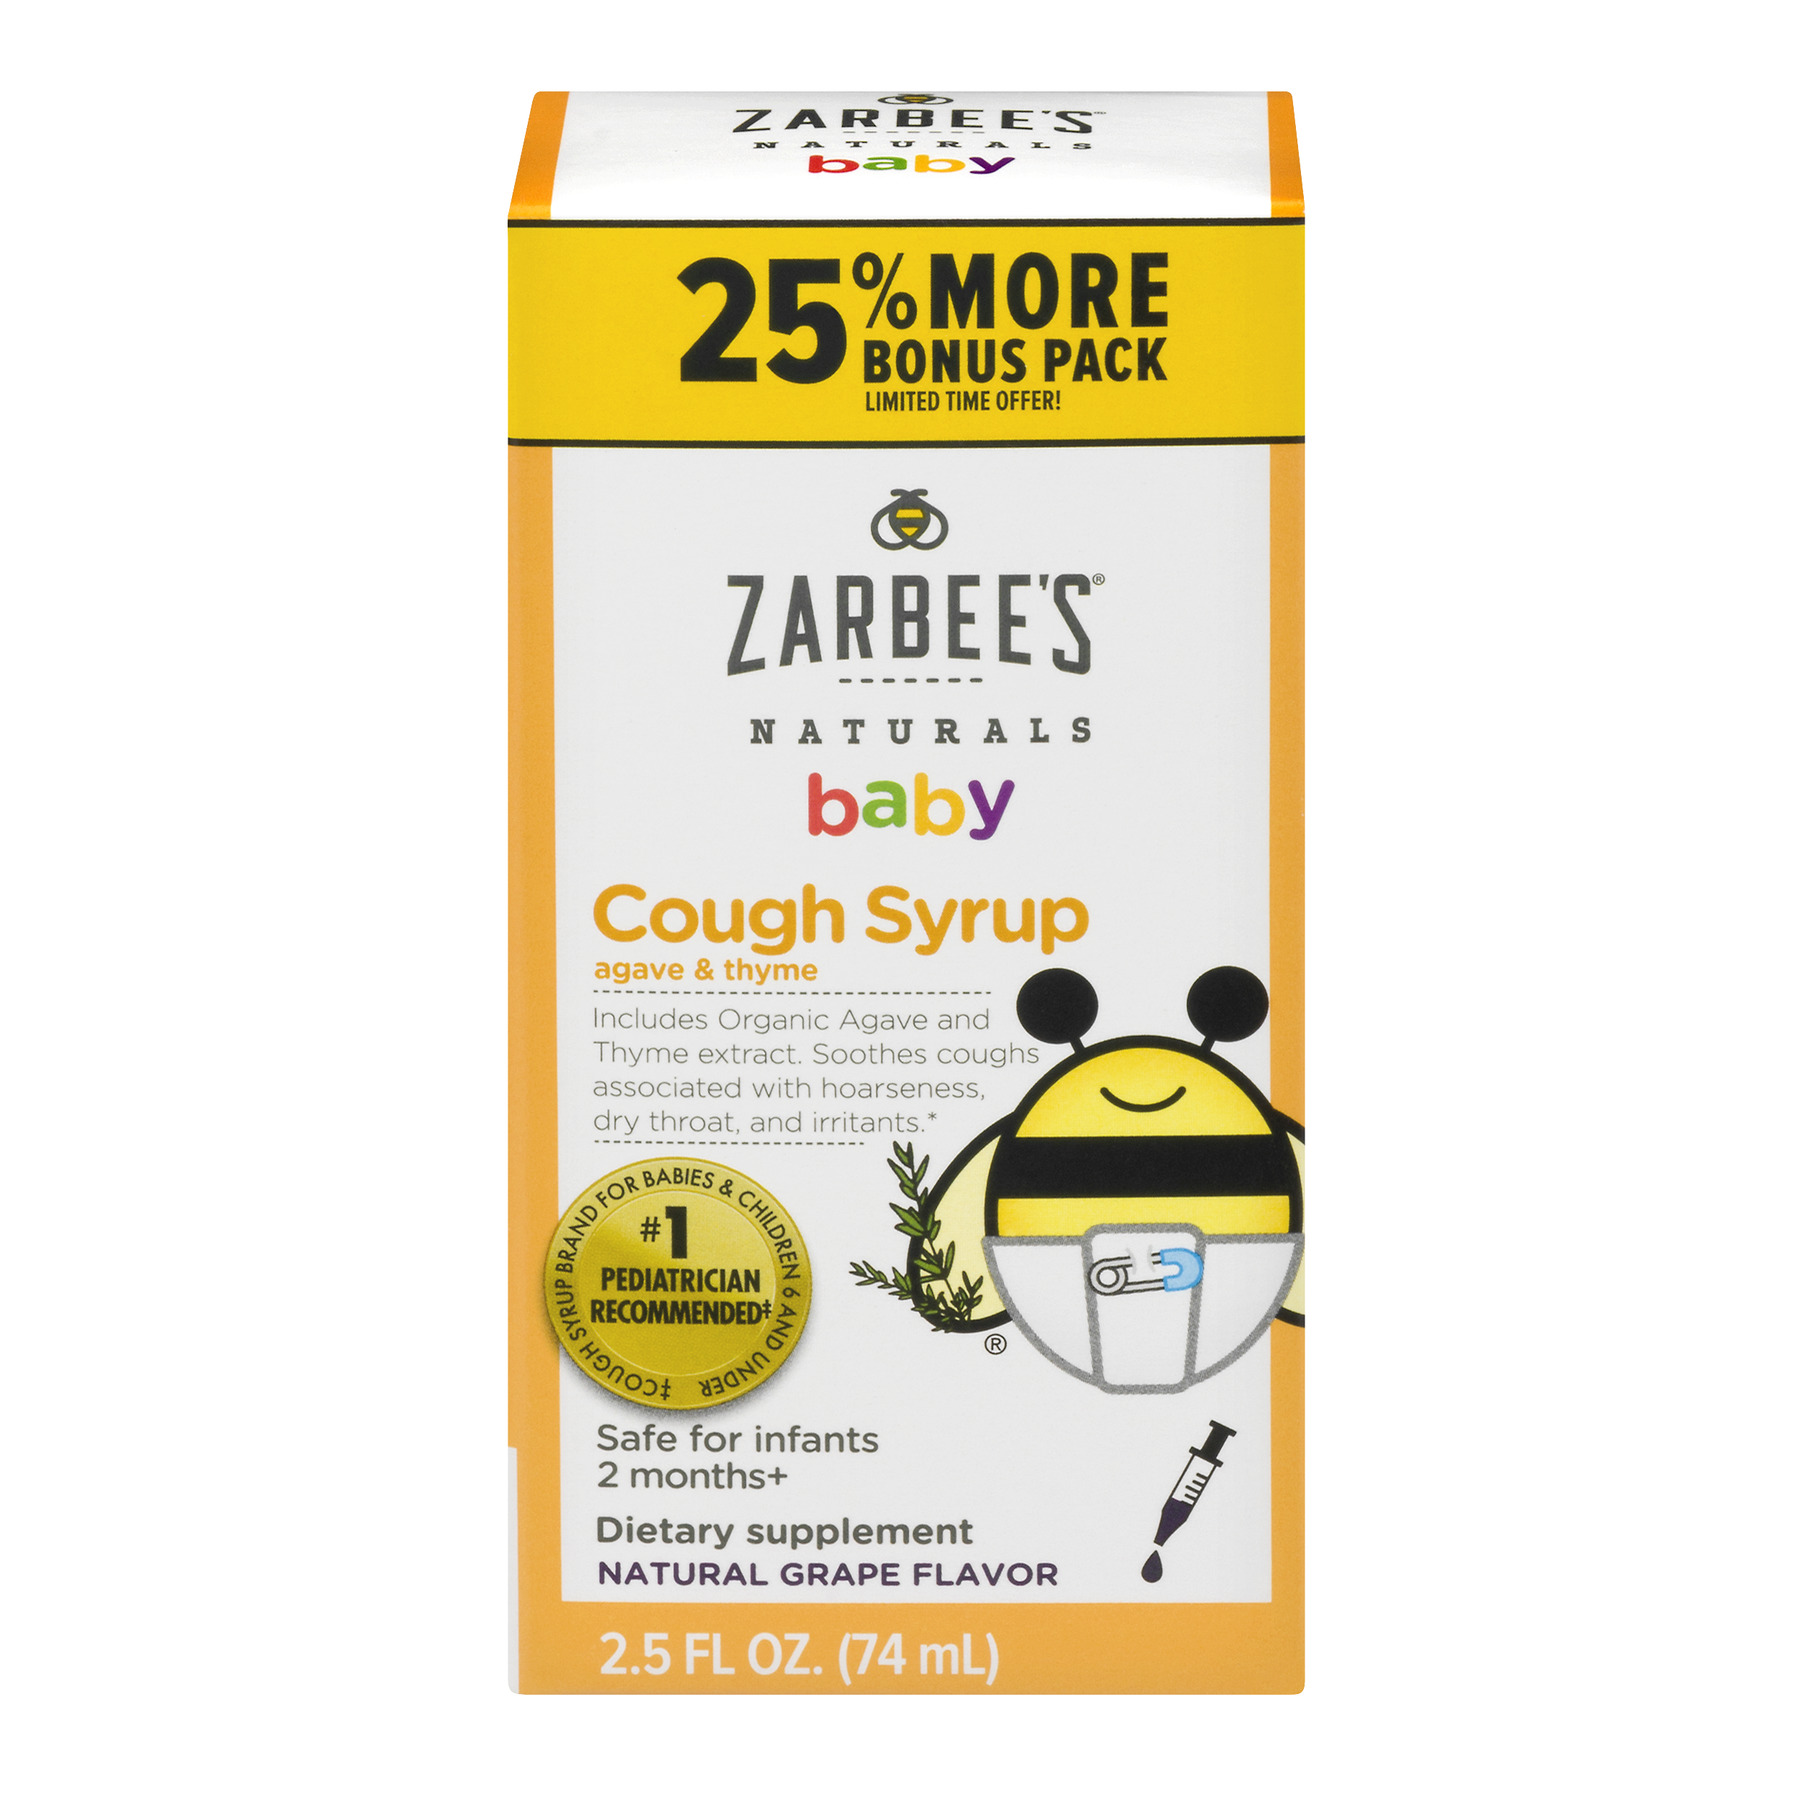 Zarbee's Naturals Baby Natural Grape Flavor Cough Syrup, 2.5 fl oz